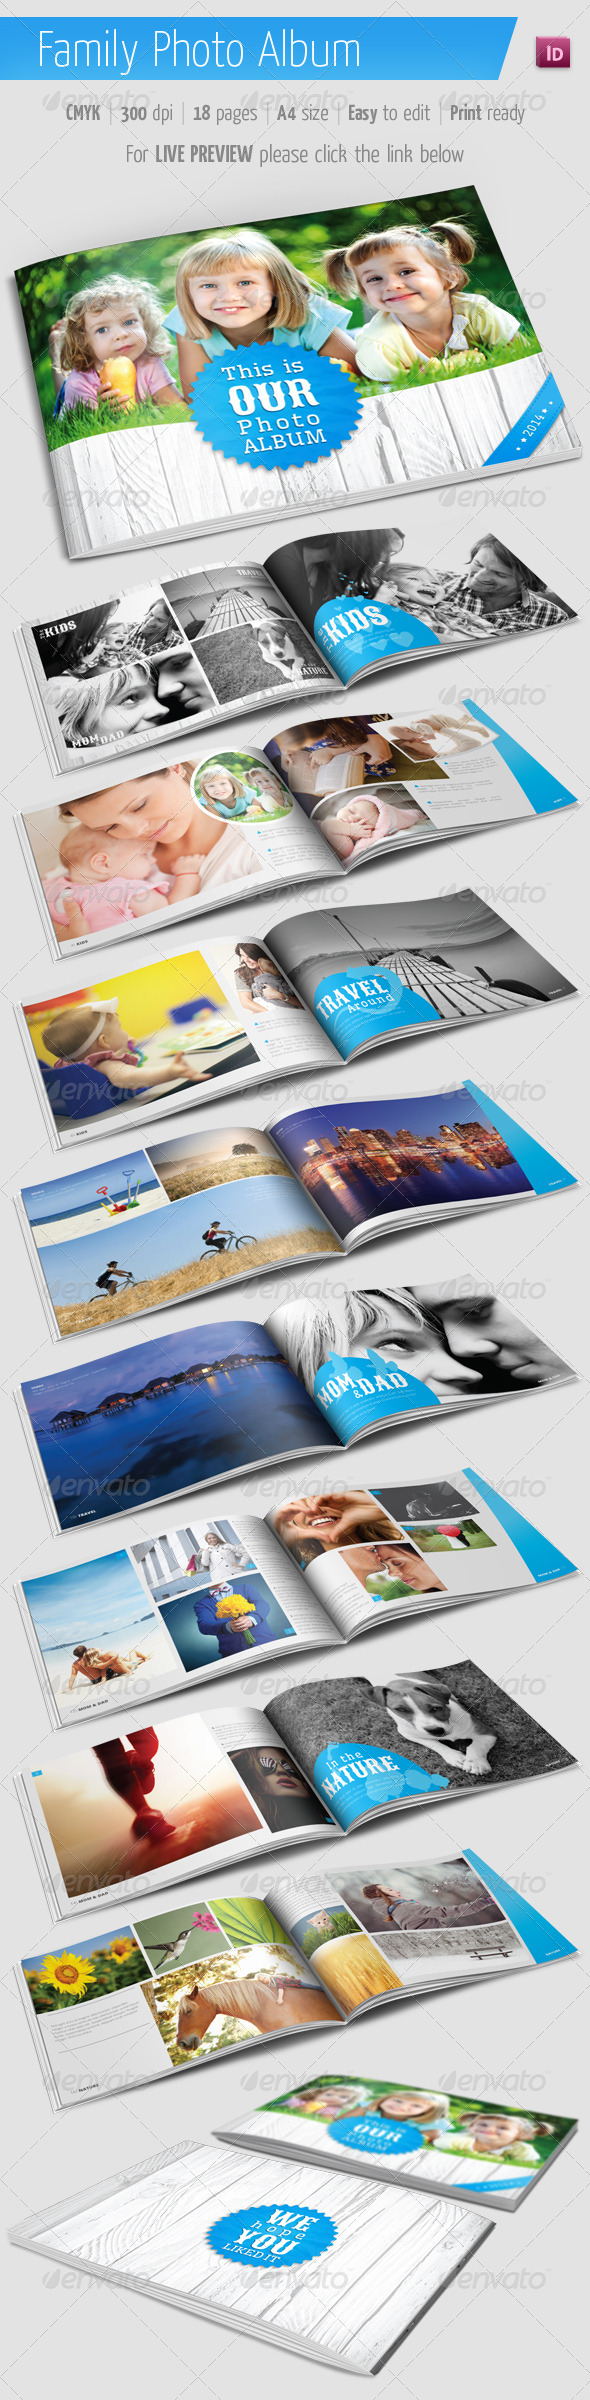 Family Photo Album for Indesign - Photo Albums Print Templates